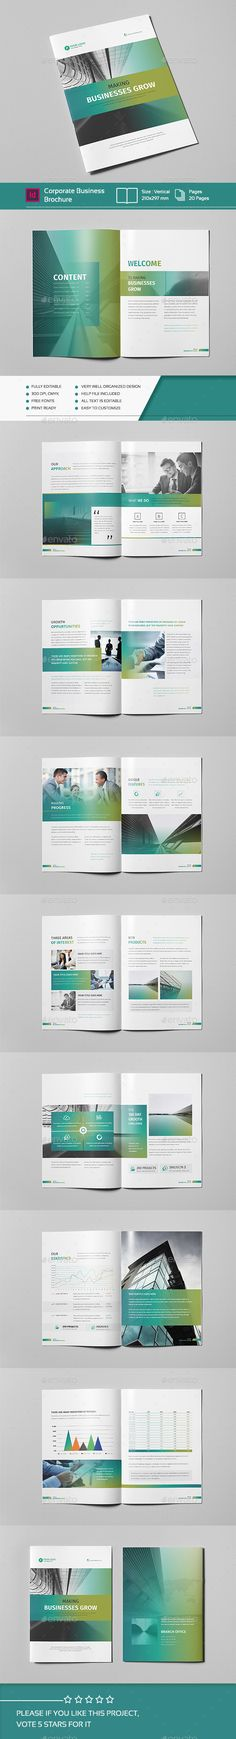 Corporate Business Brochure 20 Pages A4 Template InDesign INDD #design Download: http://graphicriver.net/item/corporate-business-brochure-20-vol02/14174521?ref=ksioks More